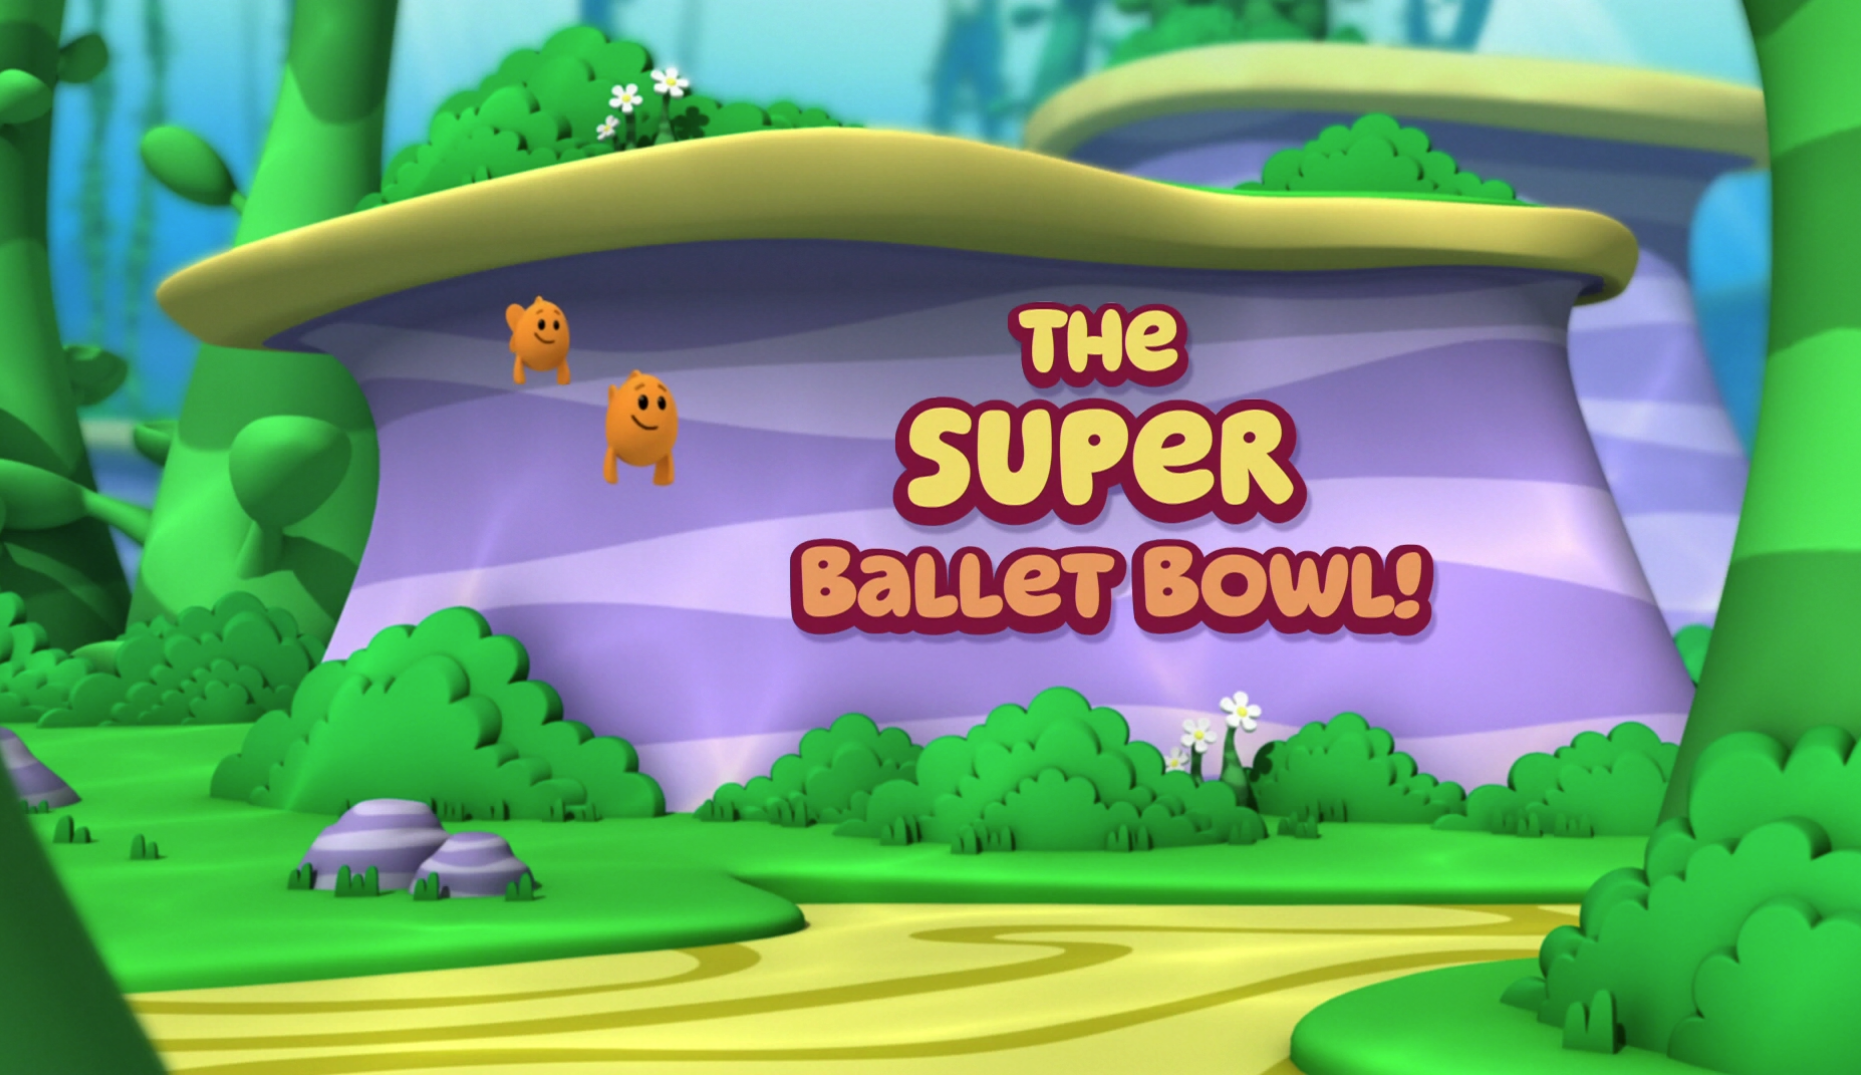 Bubble Guppies S3, Ep307 The Super Ballet Bowl! Full Episode